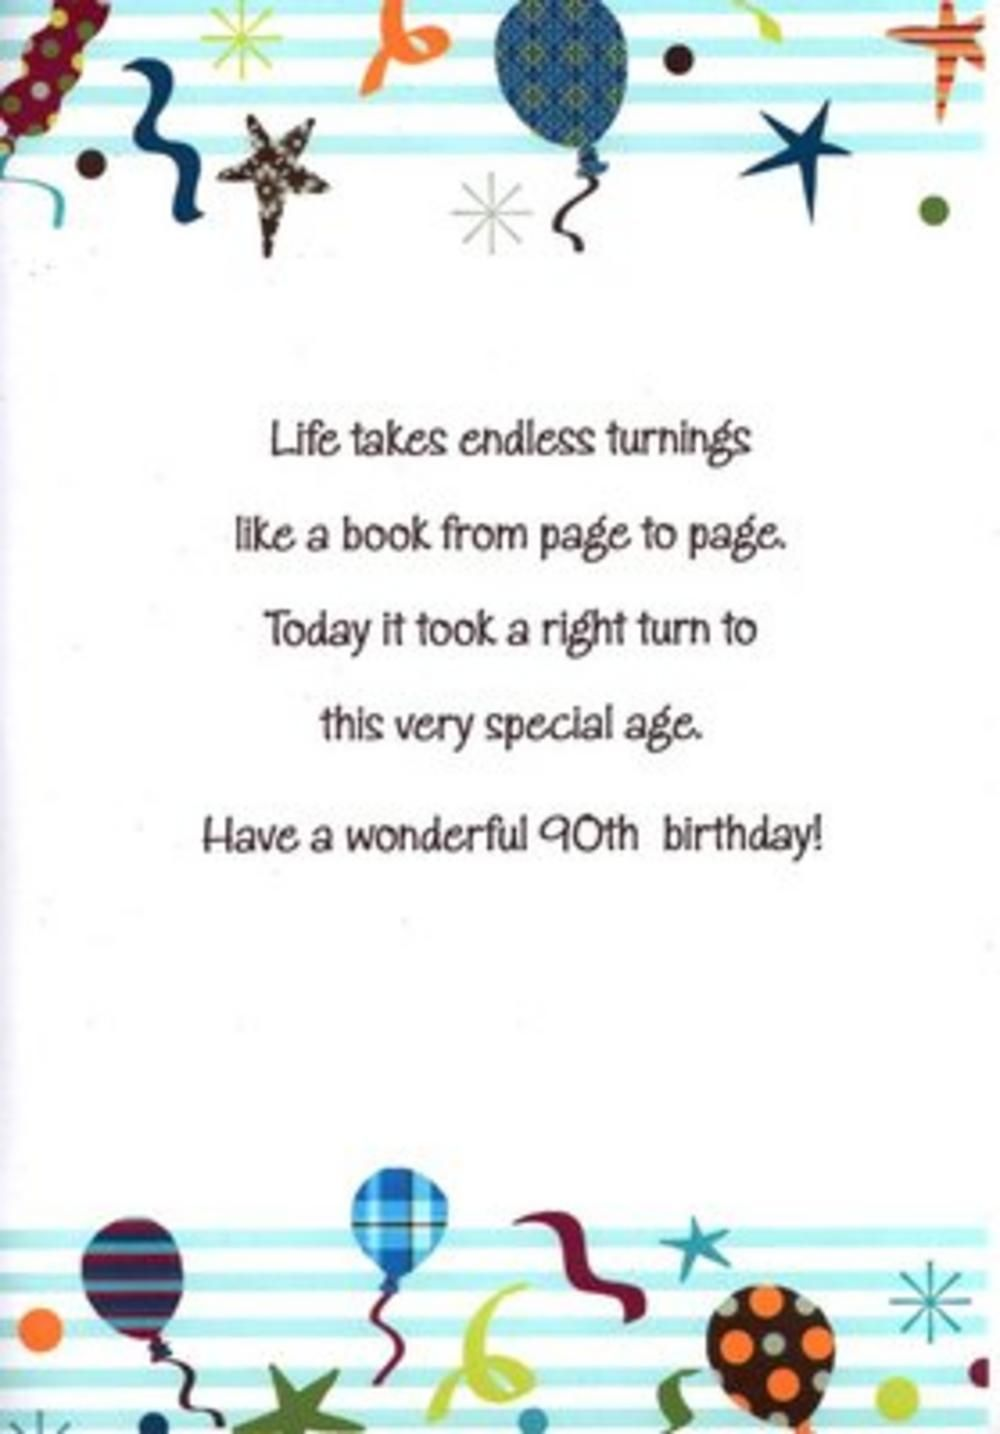 Verses for a 90th birthday card google search words verses for a 90th birthday card google search bookmarktalkfo